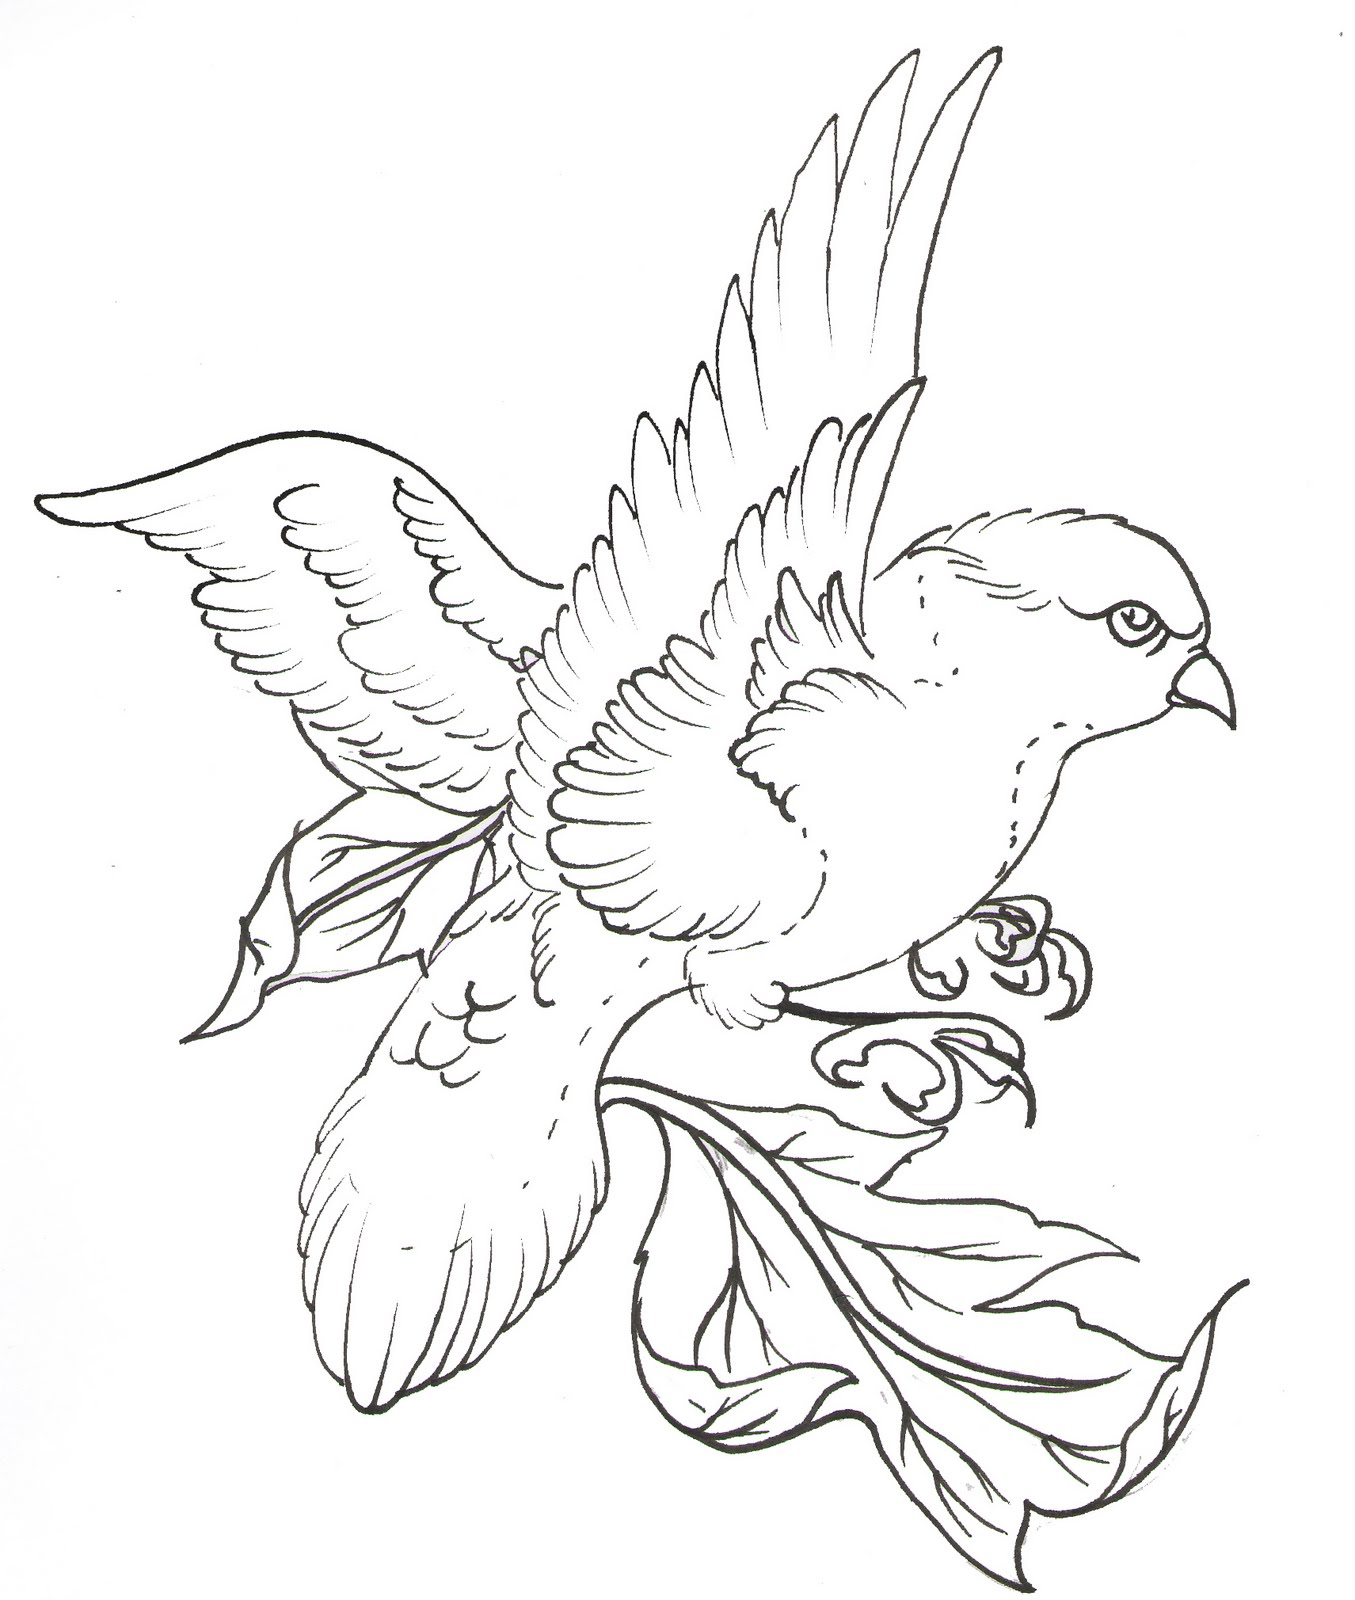 Free Tattoo Line Drawing : Tattoo line drawing at getdrawings free for personal